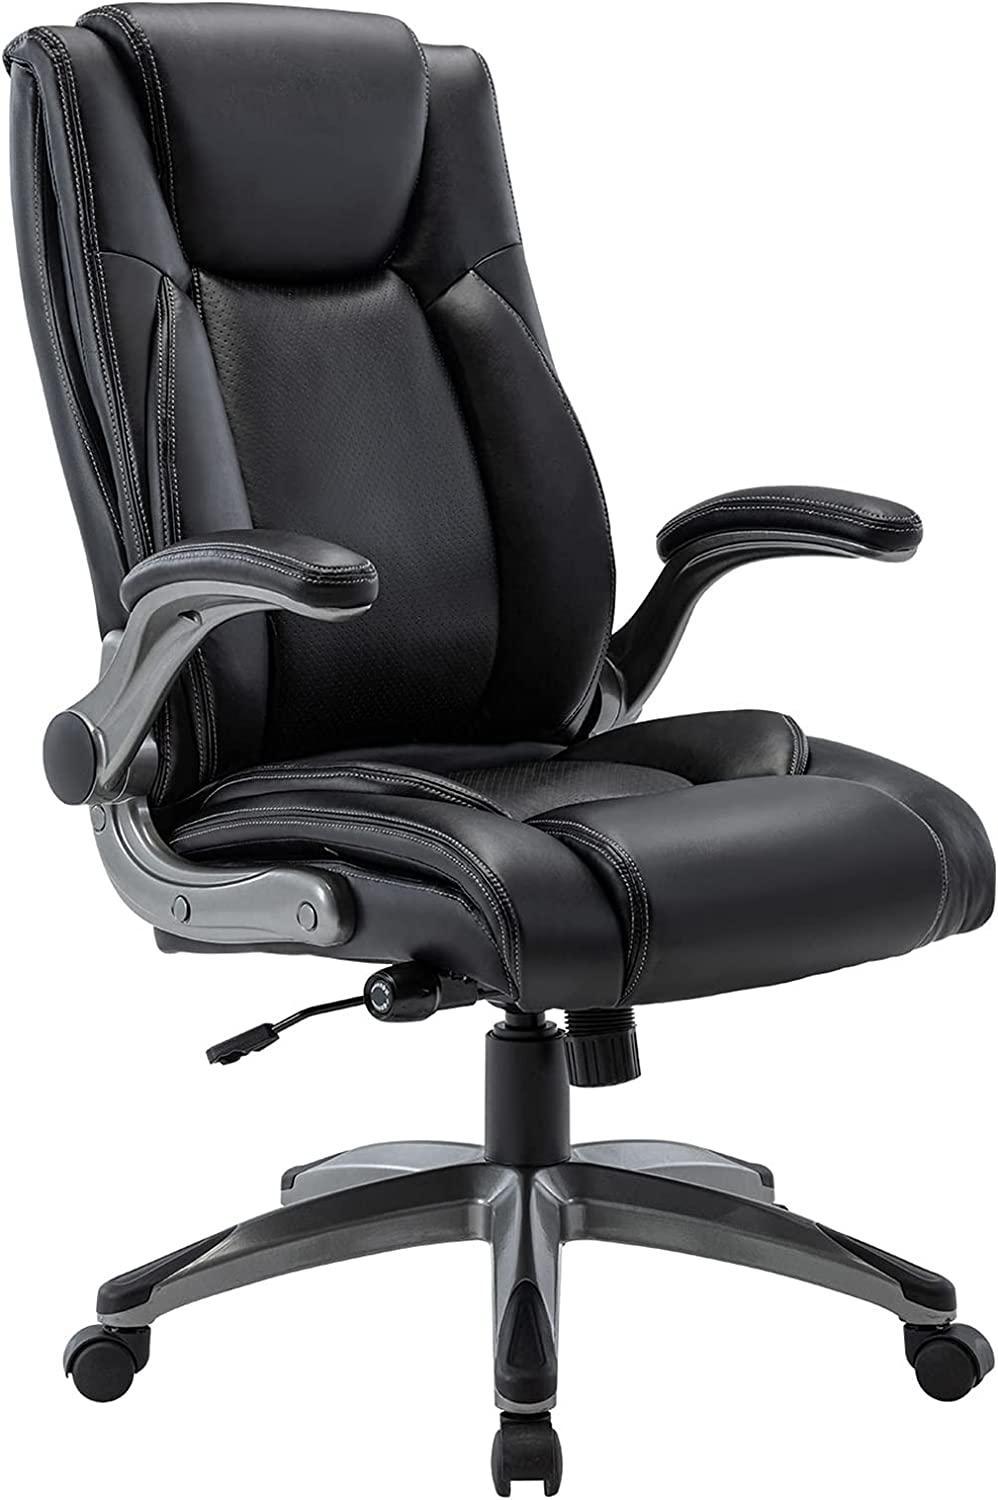 STARSPACE Office Chair with Flip-up Arms, High-Back Executive Computer Desk Task Swivel Chair Bonded Leather with Adjustable Height and Built-in Lumbar Support: Office Products